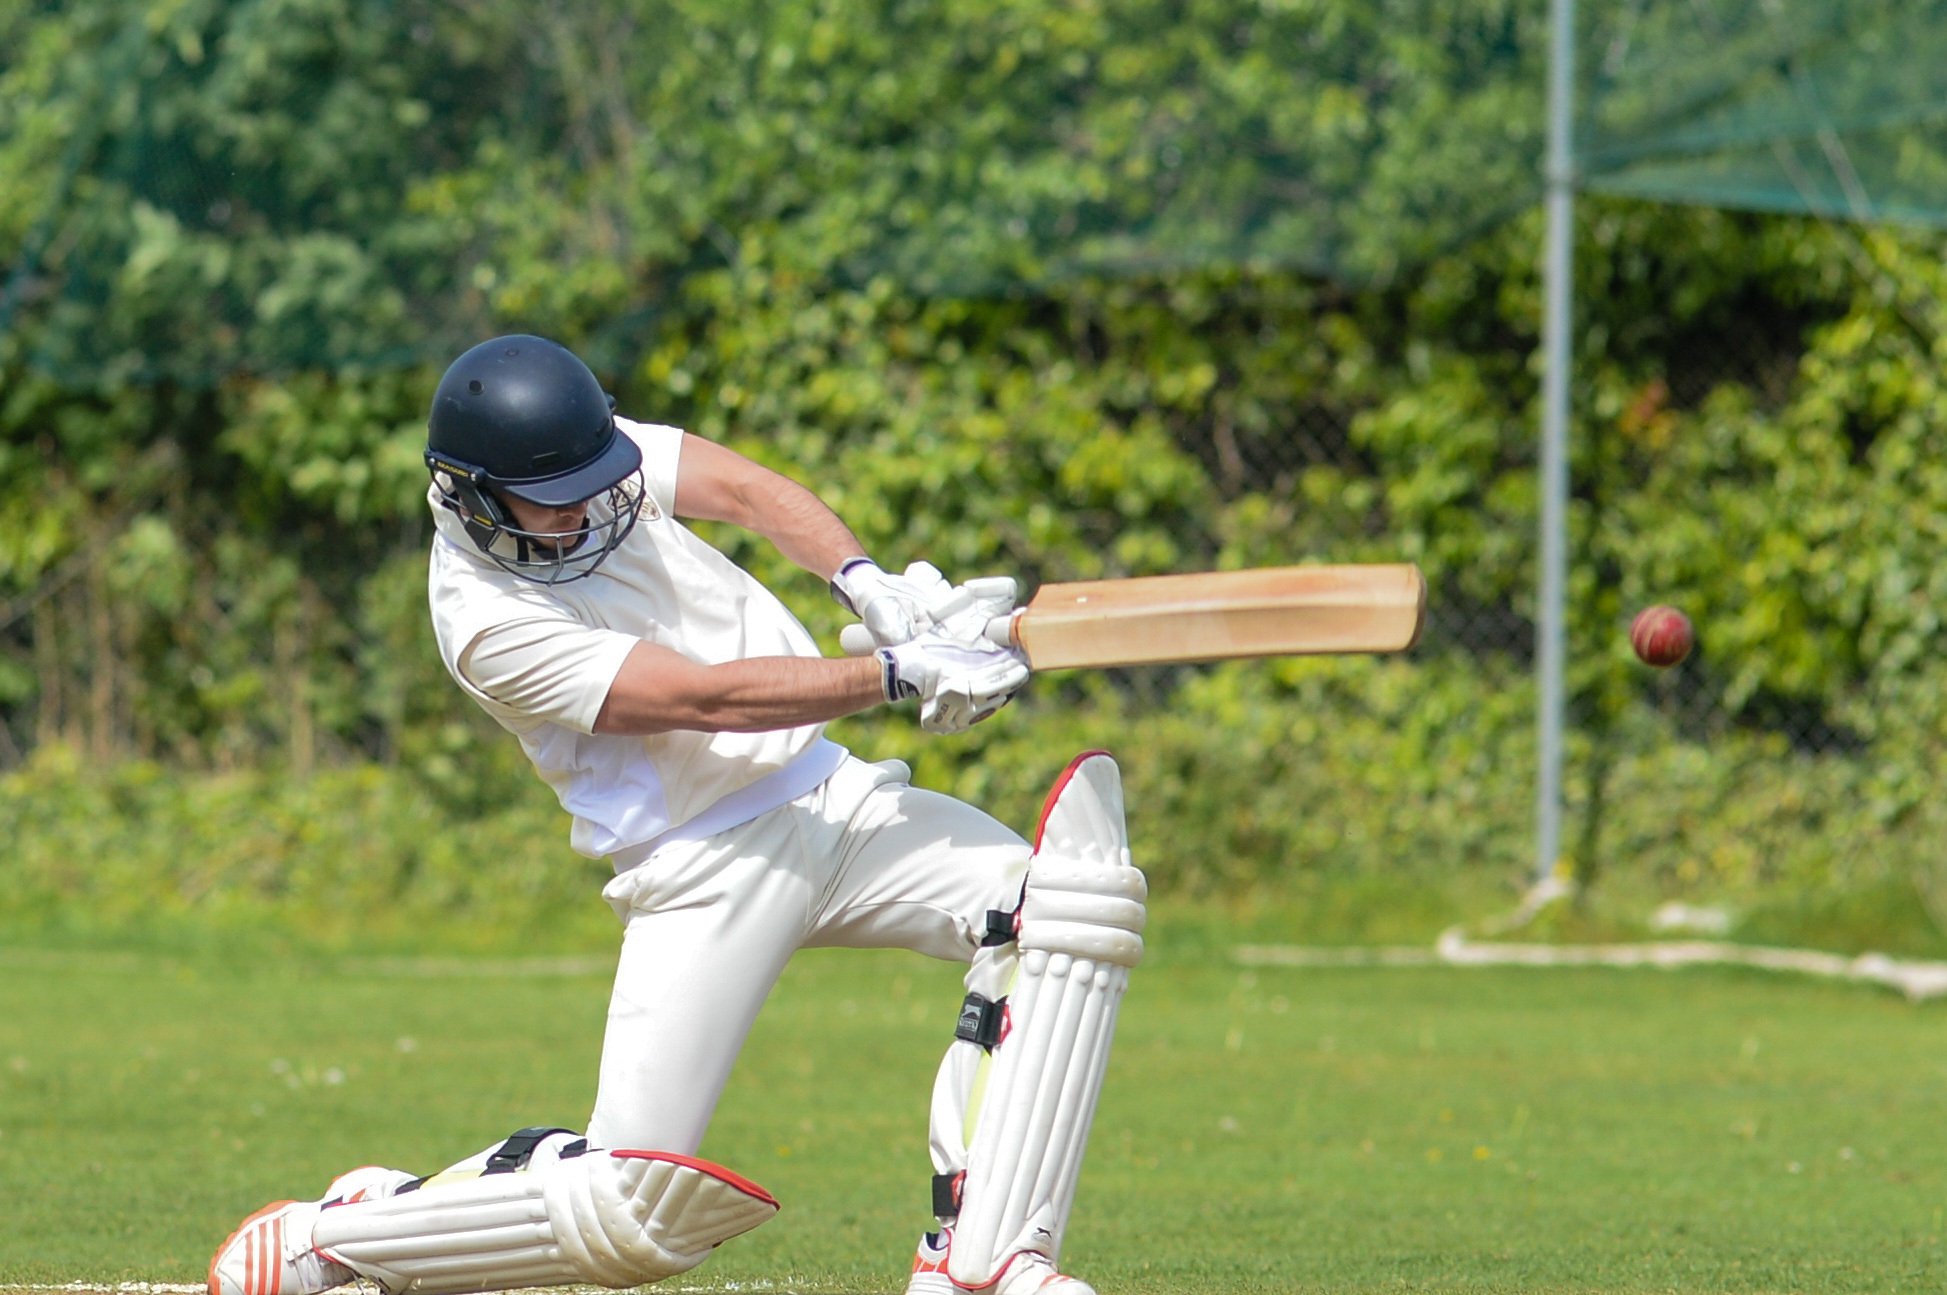 Josh Worsley scored a half century for Wormelow in their much needed win against Coombs Wood